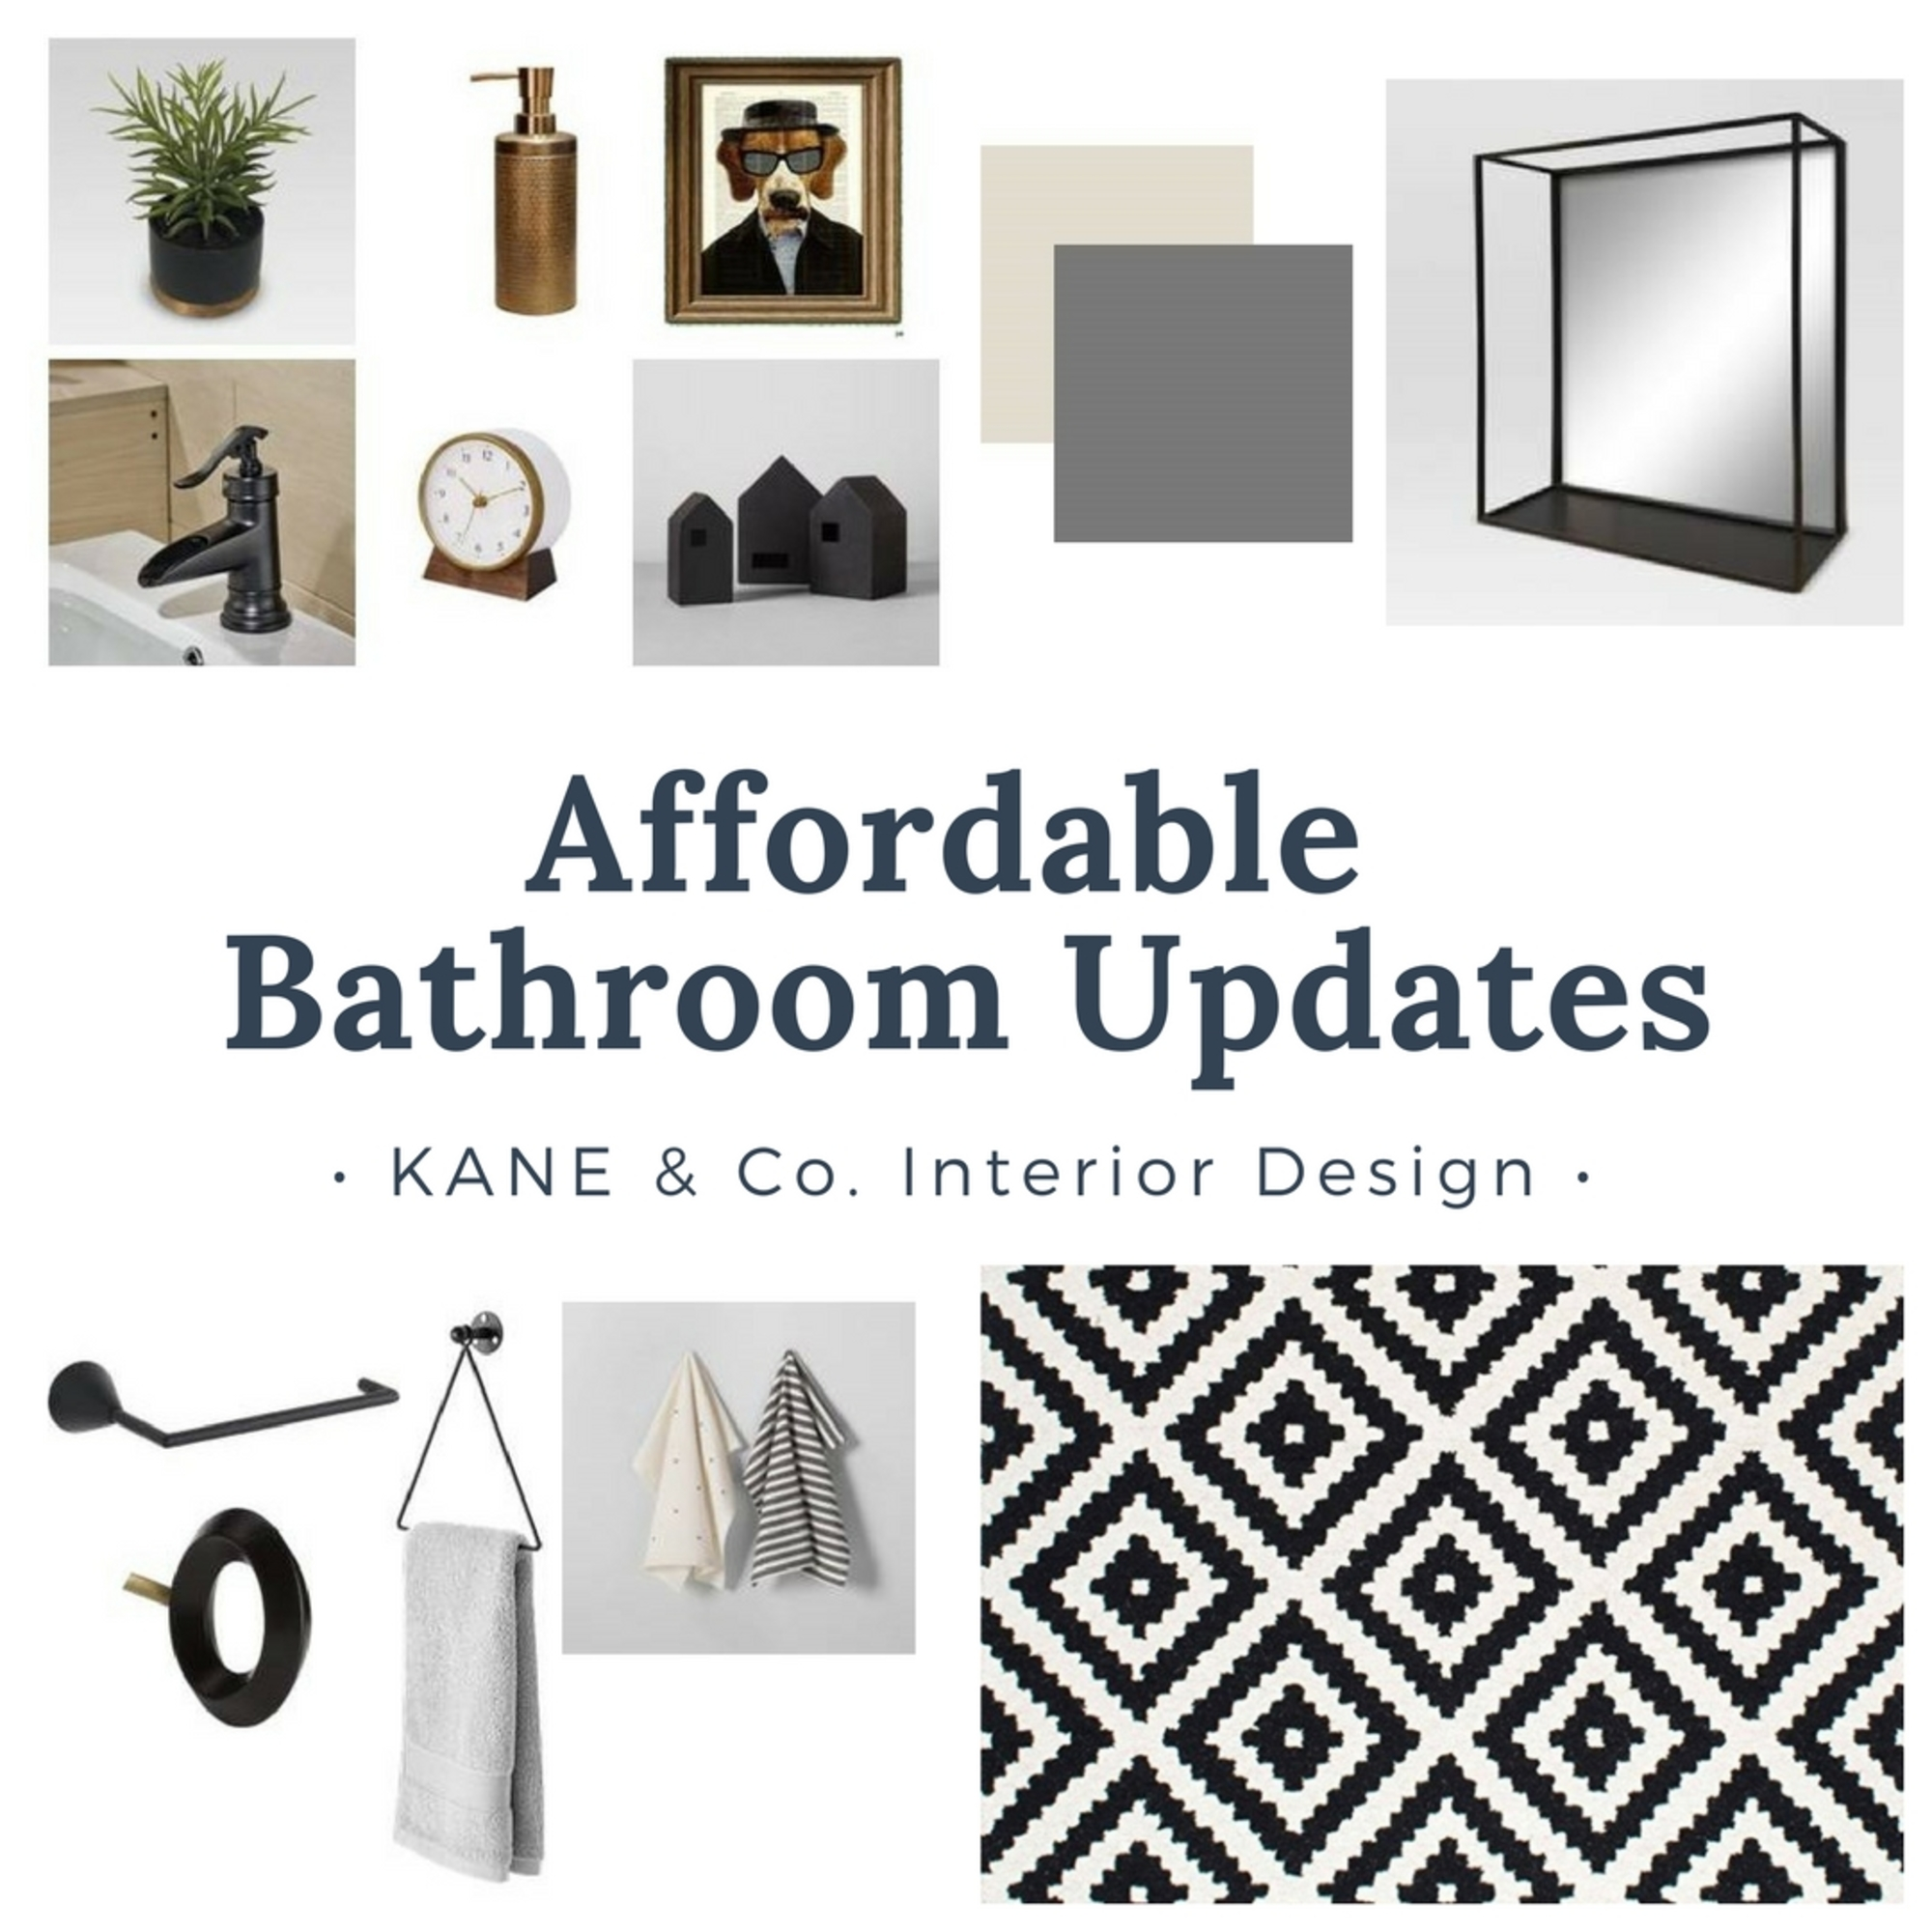 Affordable Bathroom Updates-In.jpg